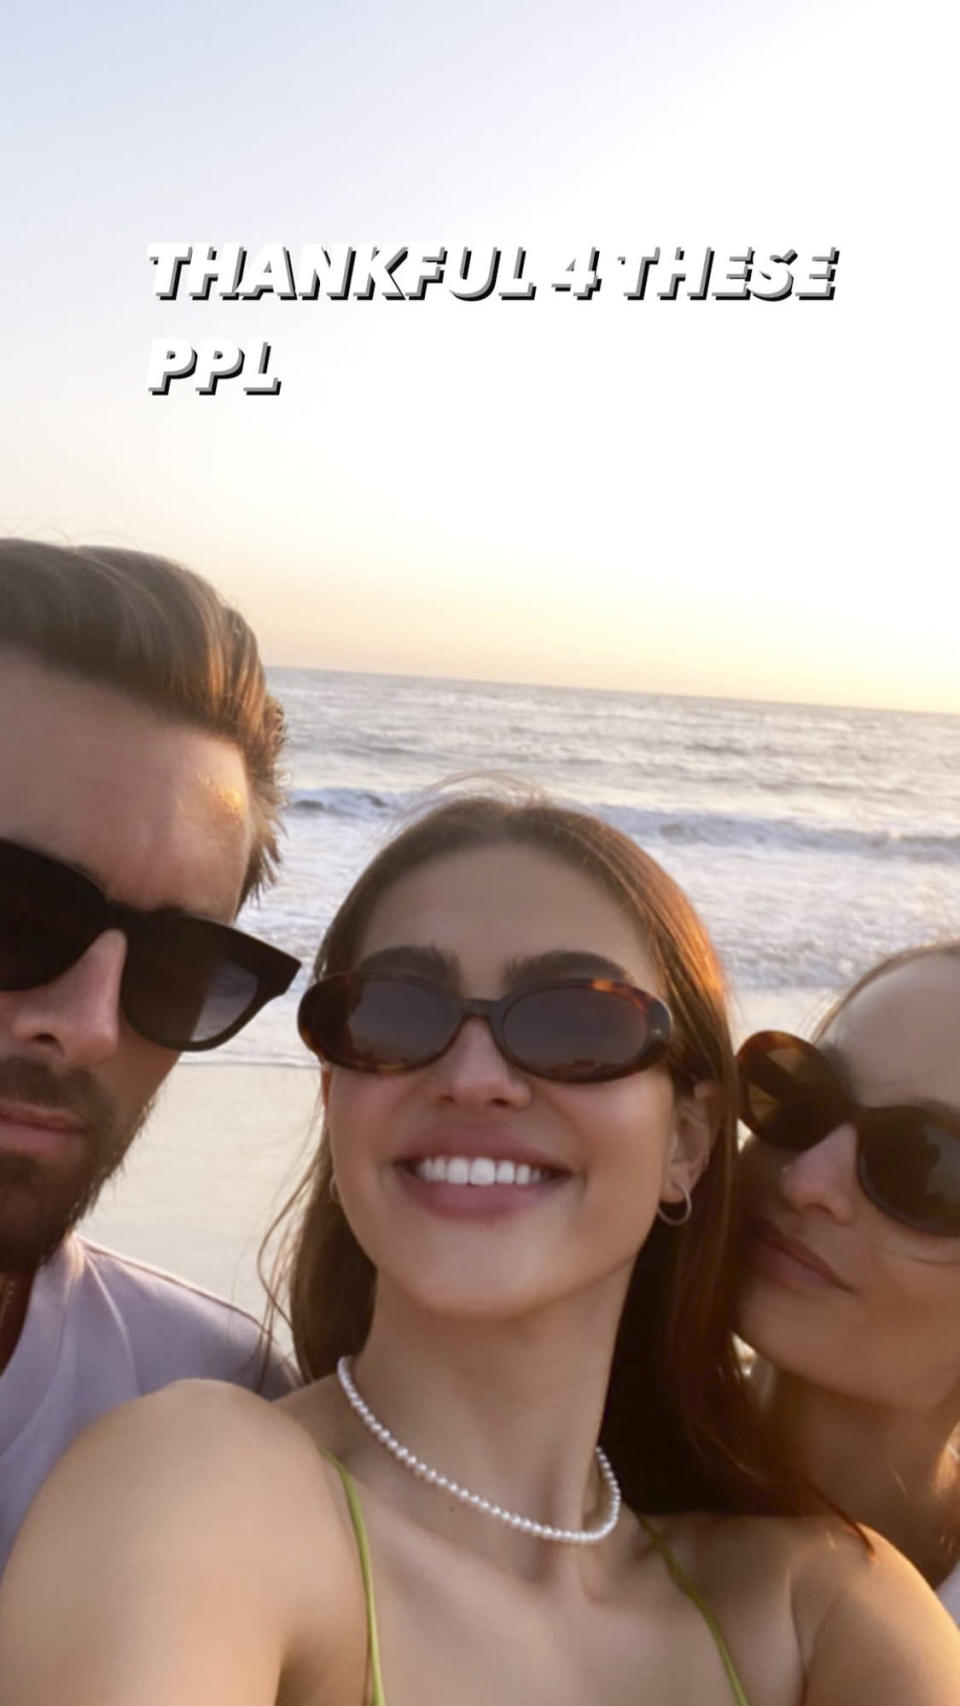 """<p>""""Thankful 4 these ppl,"""" Hamlin <a href=""""https://people.com/tv/amelia-hamlin-thankful-for-scott-disick-and-family-thanksgiving/"""" rel=""""nofollow noopener"""" target=""""_blank"""" data-ylk=""""slk:shared on her Instagram story"""" class=""""link rapid-noclick-resp"""">shared on her Instagram story</a>, alongside a selfie with Scott Disick and another pal. </p>"""